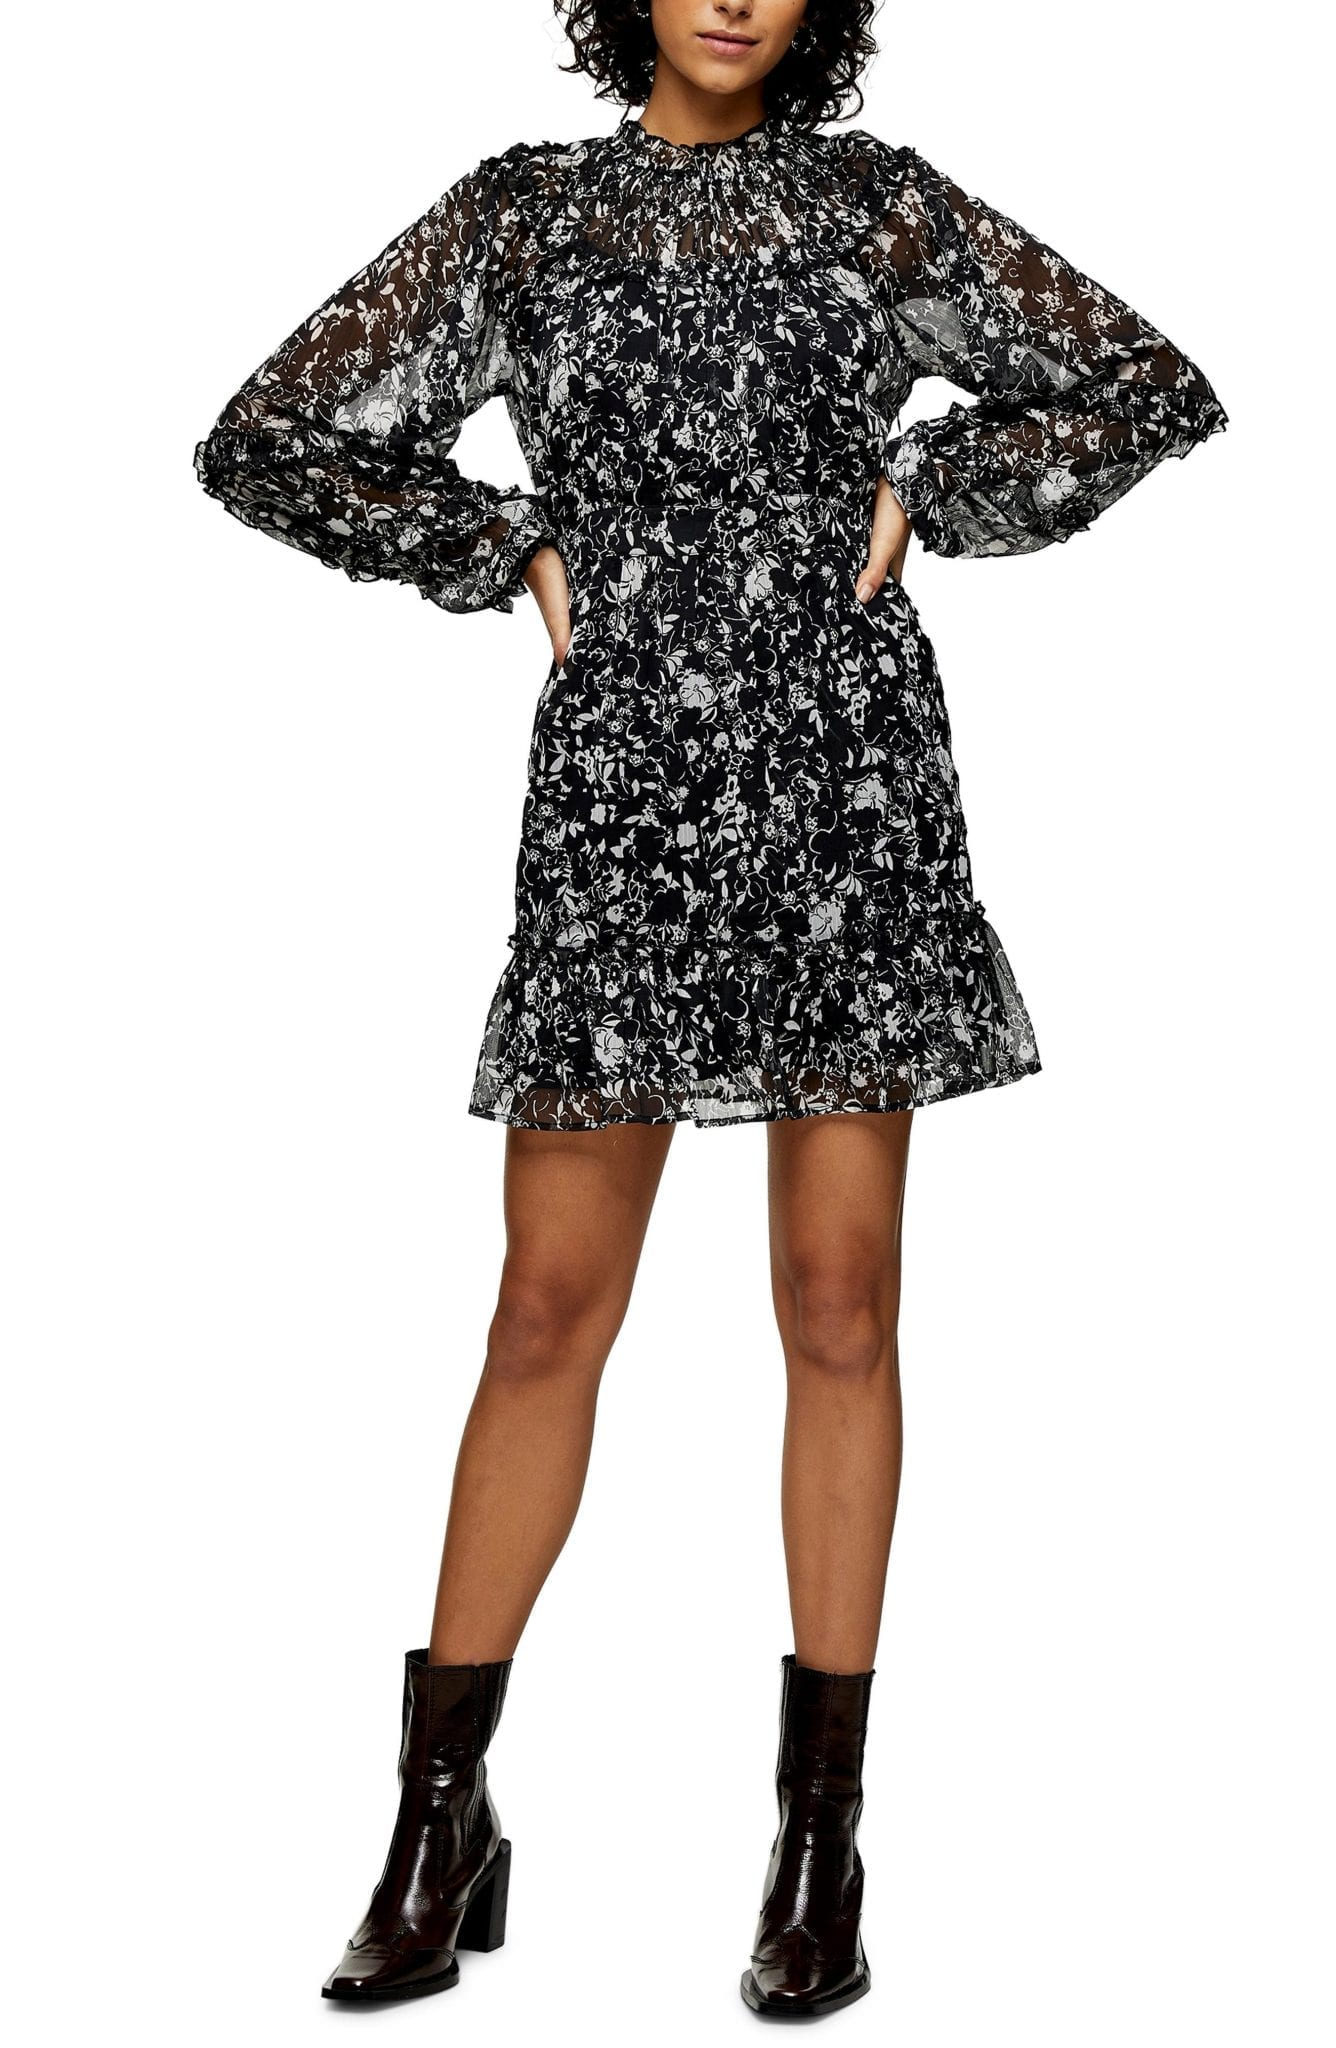 TOPSHOP Ruffle Floral Mini Dress